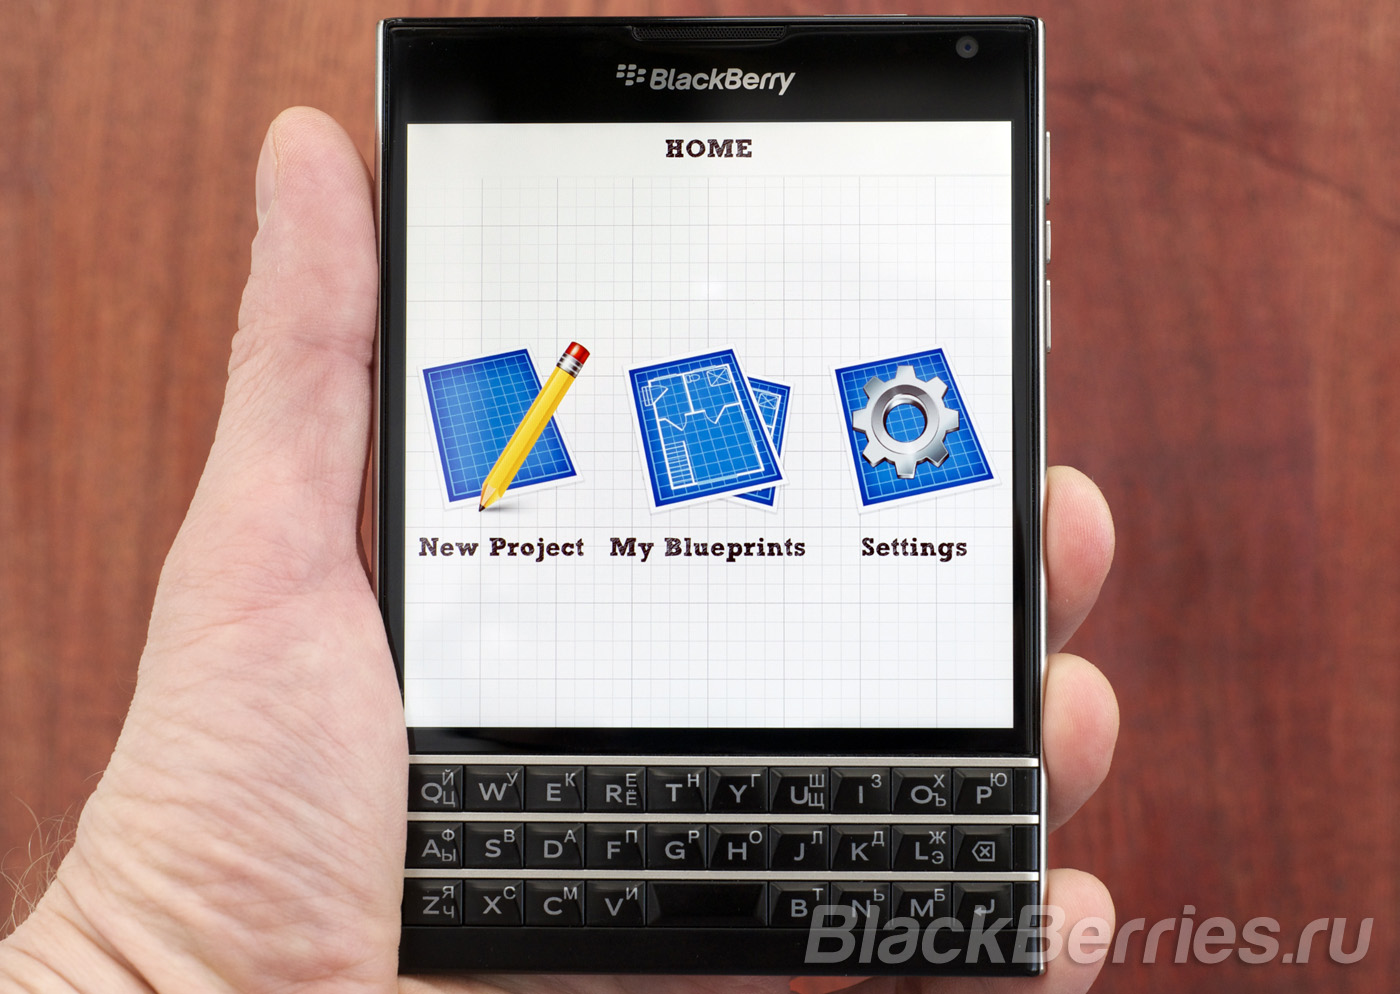 BlackBerry-Passport-Blueprints-1